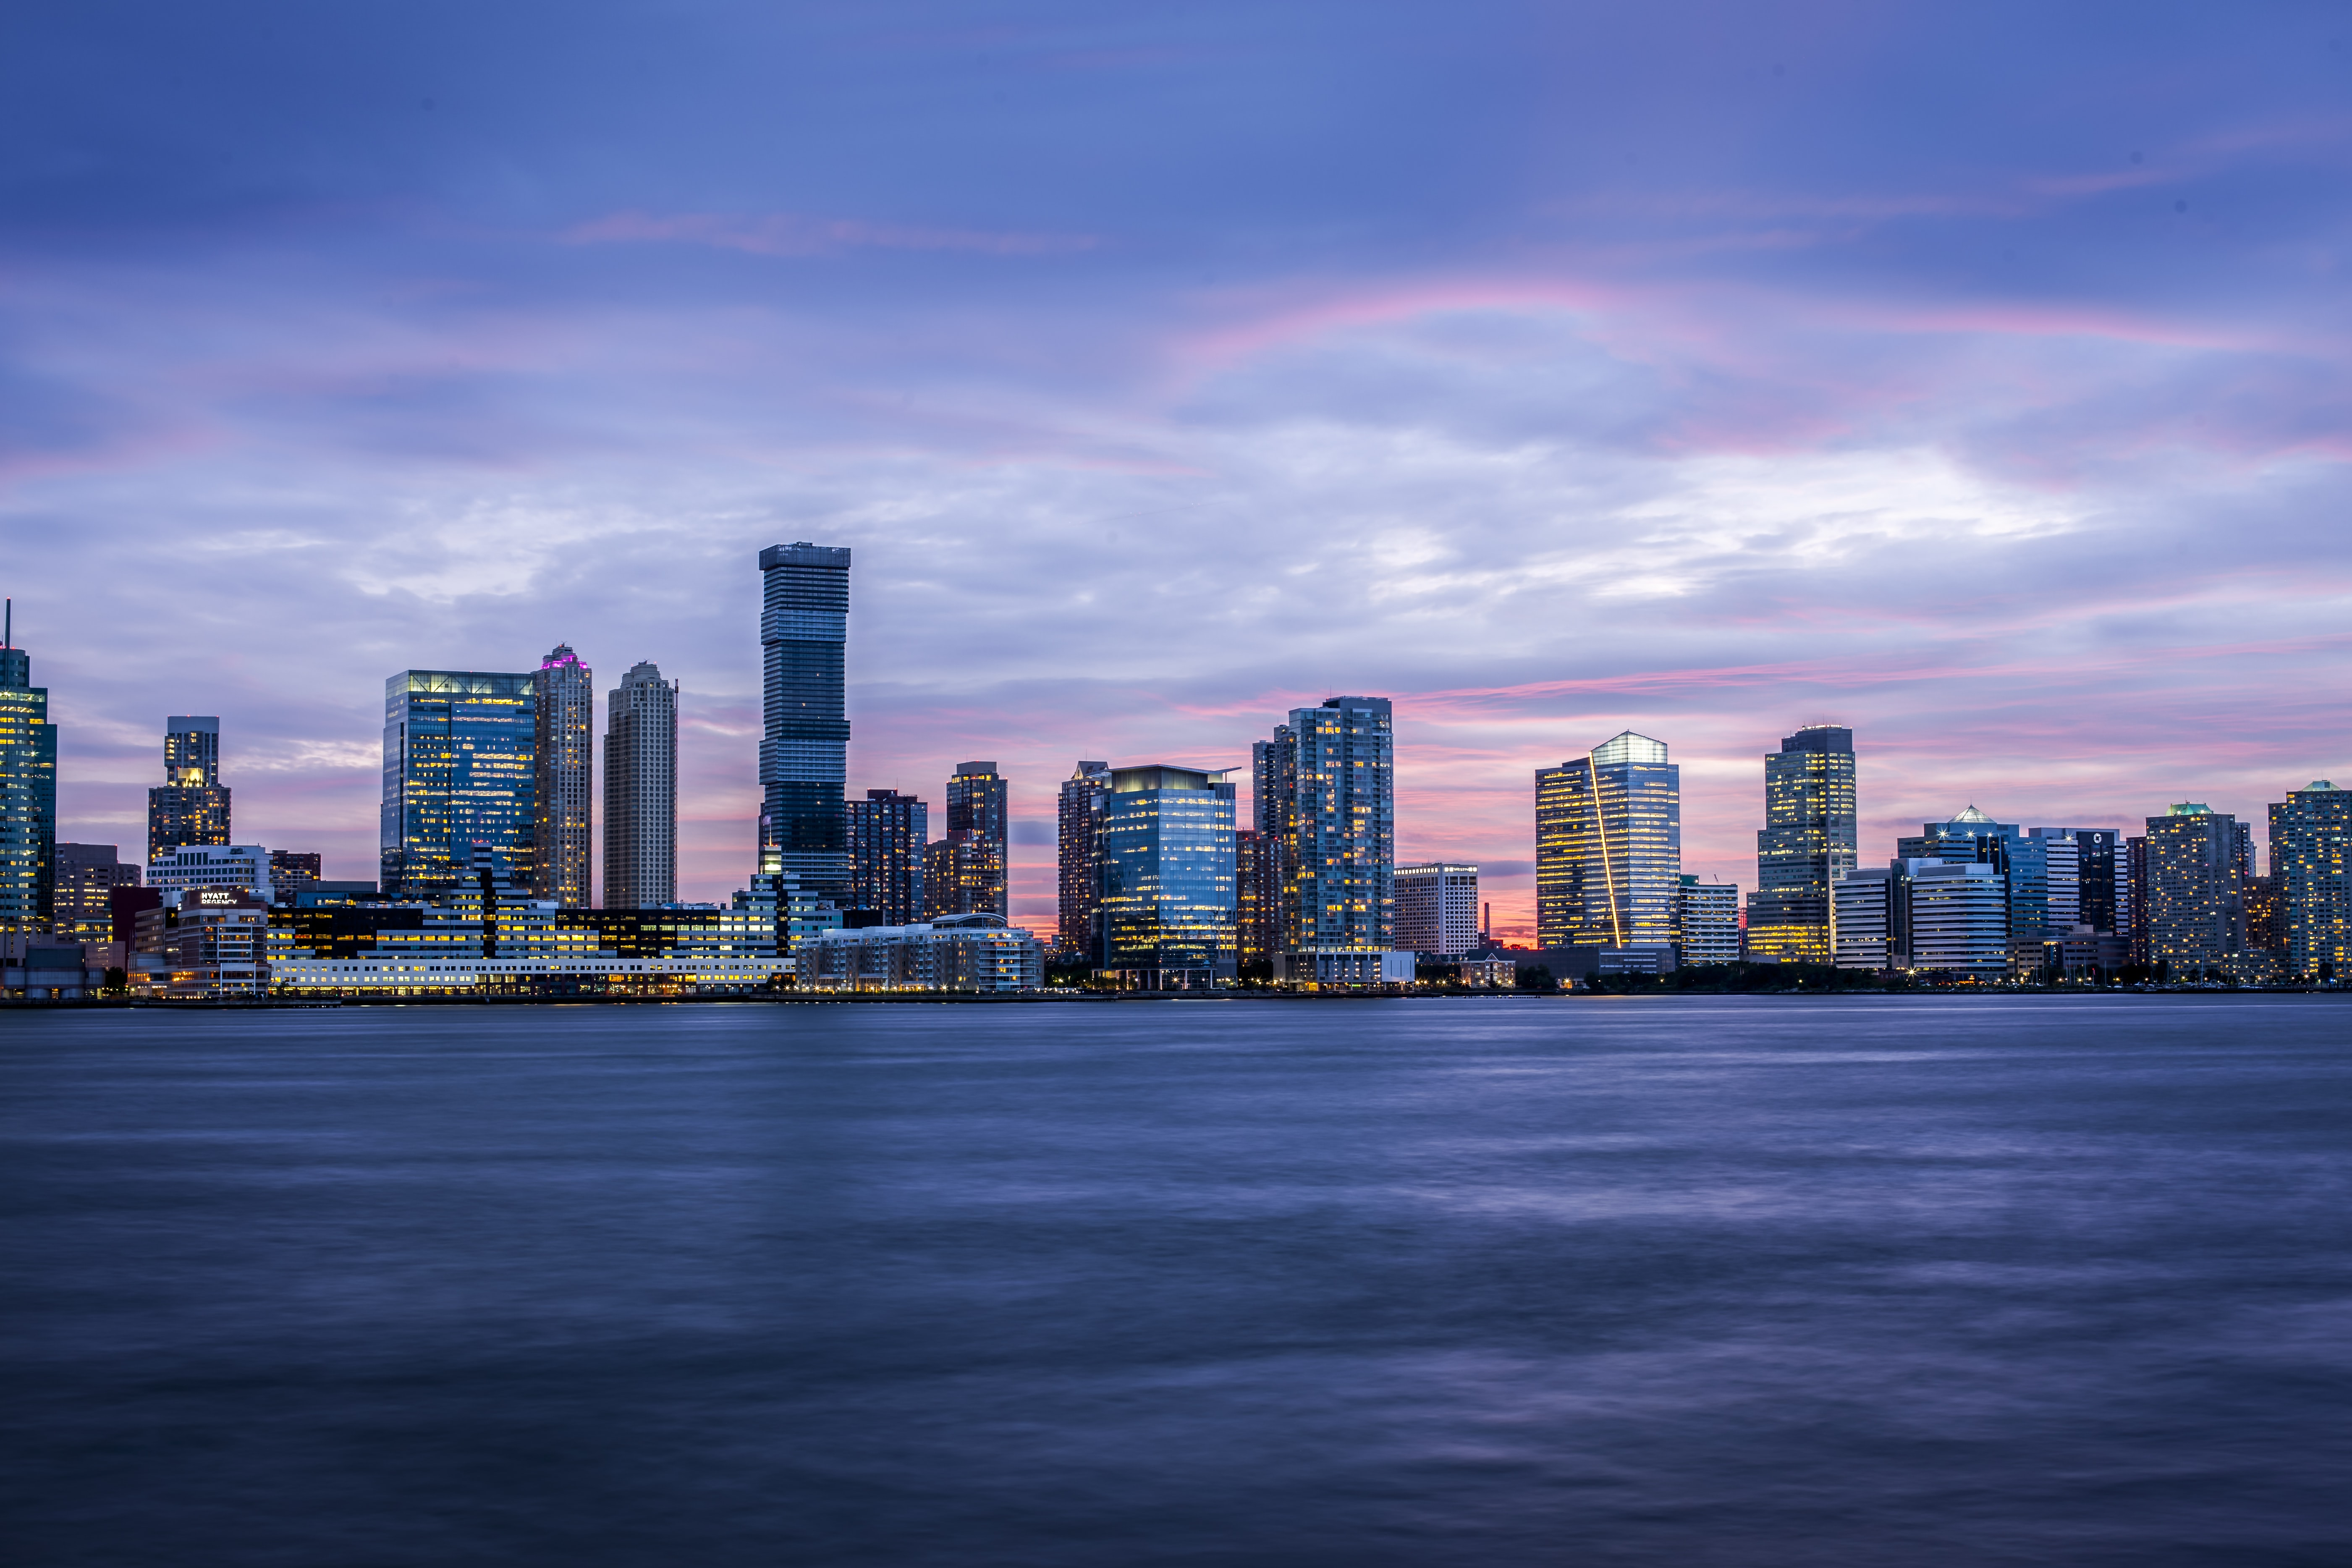 The bright skyline of New York seen from the Hudson River at night